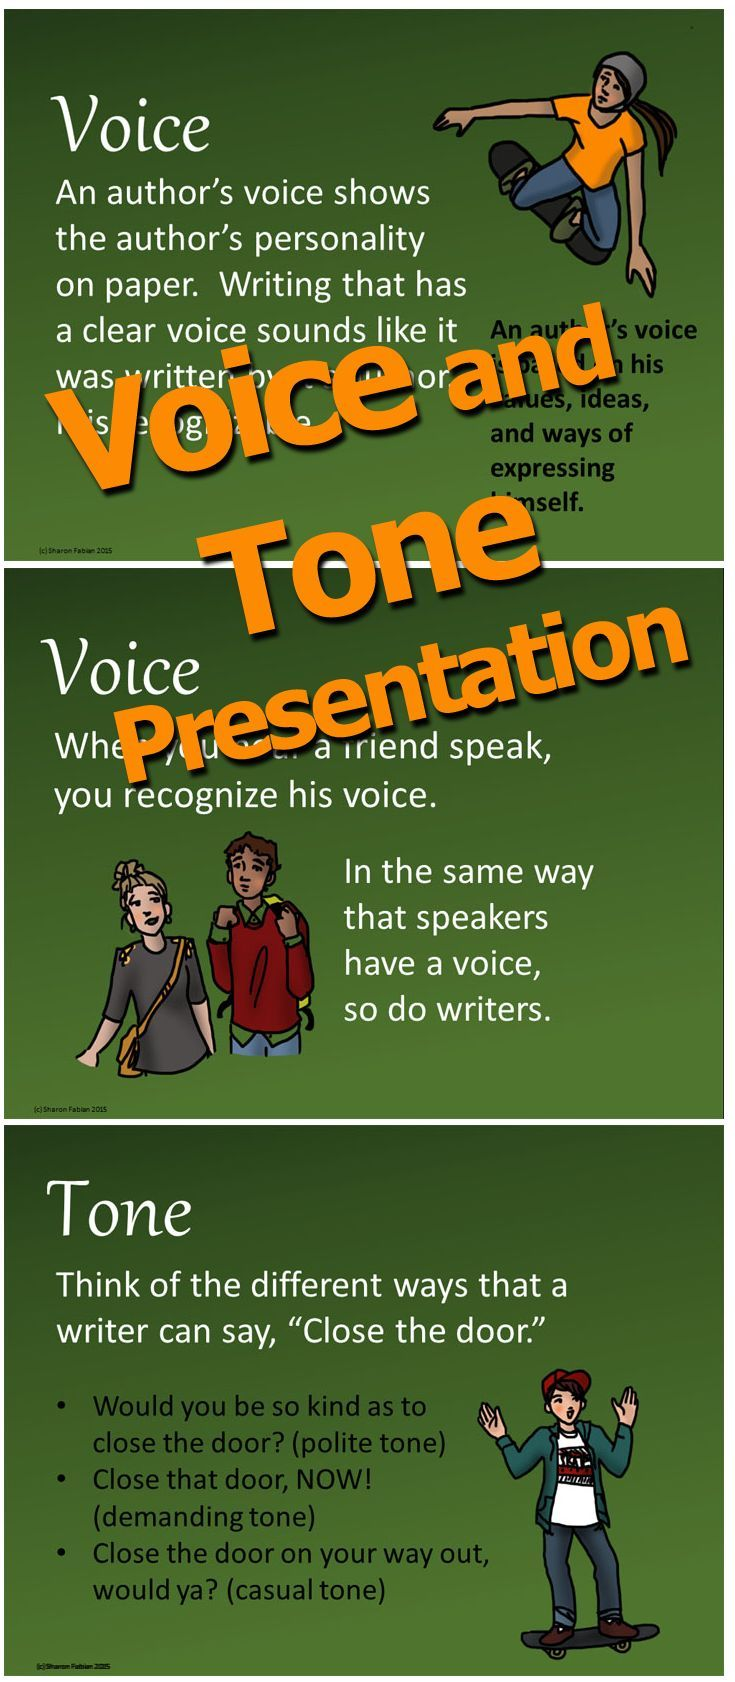 Voice and Tone Presentation introduces and explains the concepts of voice and tone in writing. The text is clear and carefully explains these concepts which can be confusing for students. Formal and informal voices are discussed, and lists of words that could describe various voices and tones in writing are provided.